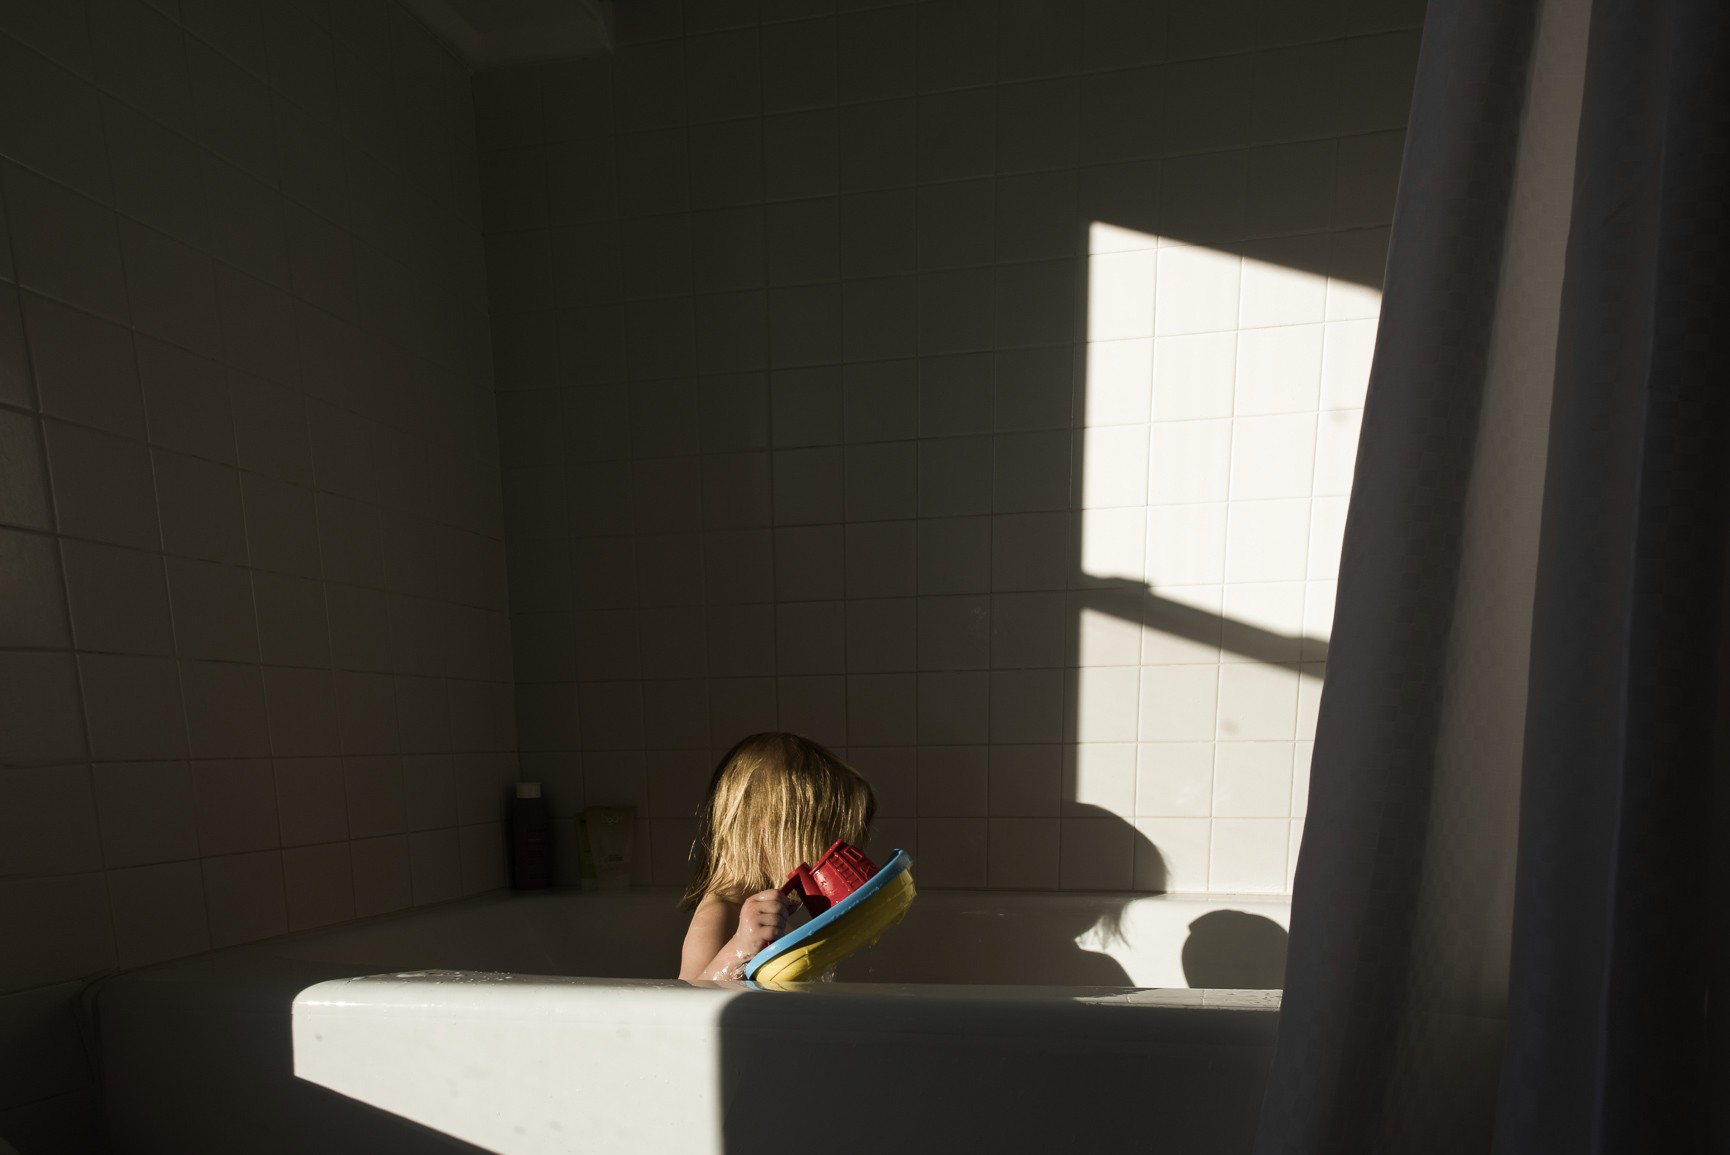 Everyday-Life-by-Sarah-Wilkerson-1730px–6